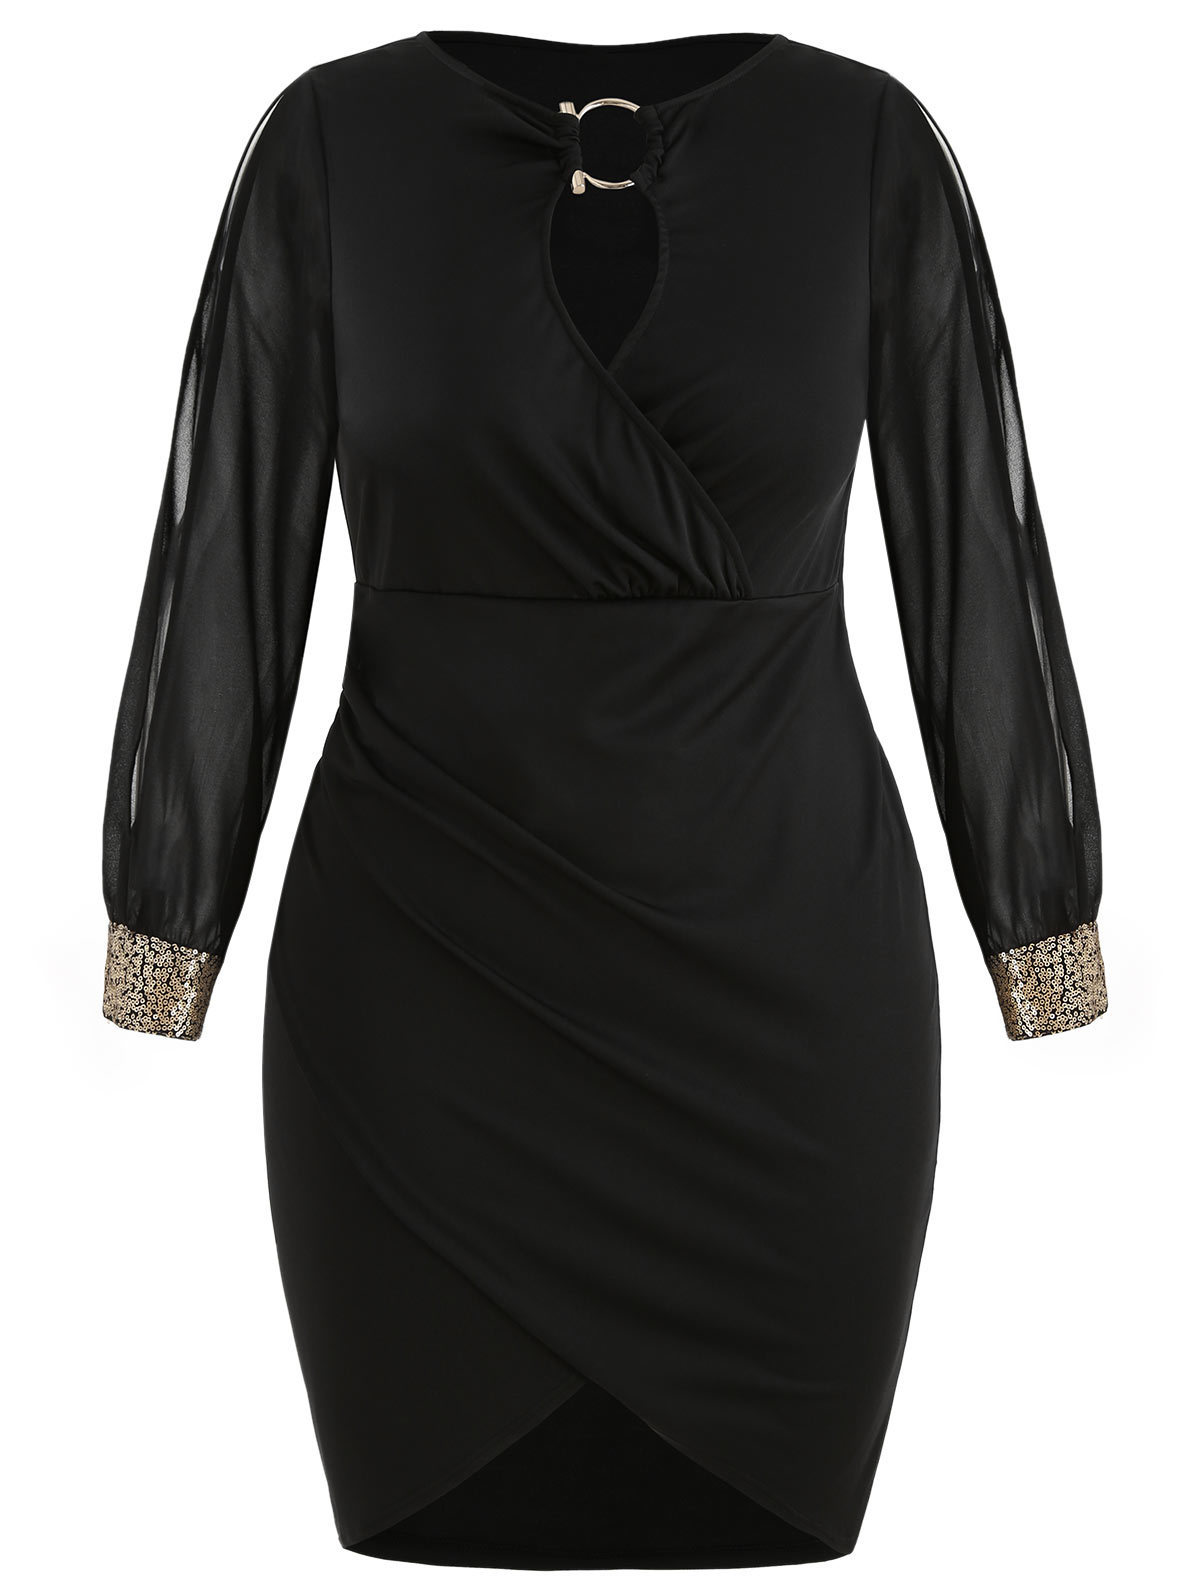 Wipalo Slit Sleeve Plus Size O-ring Sequin Embellished Bodycon Dress Elegant Solid Slip Front Mini Party Dress 5xl Fall Vestidos Y19051001